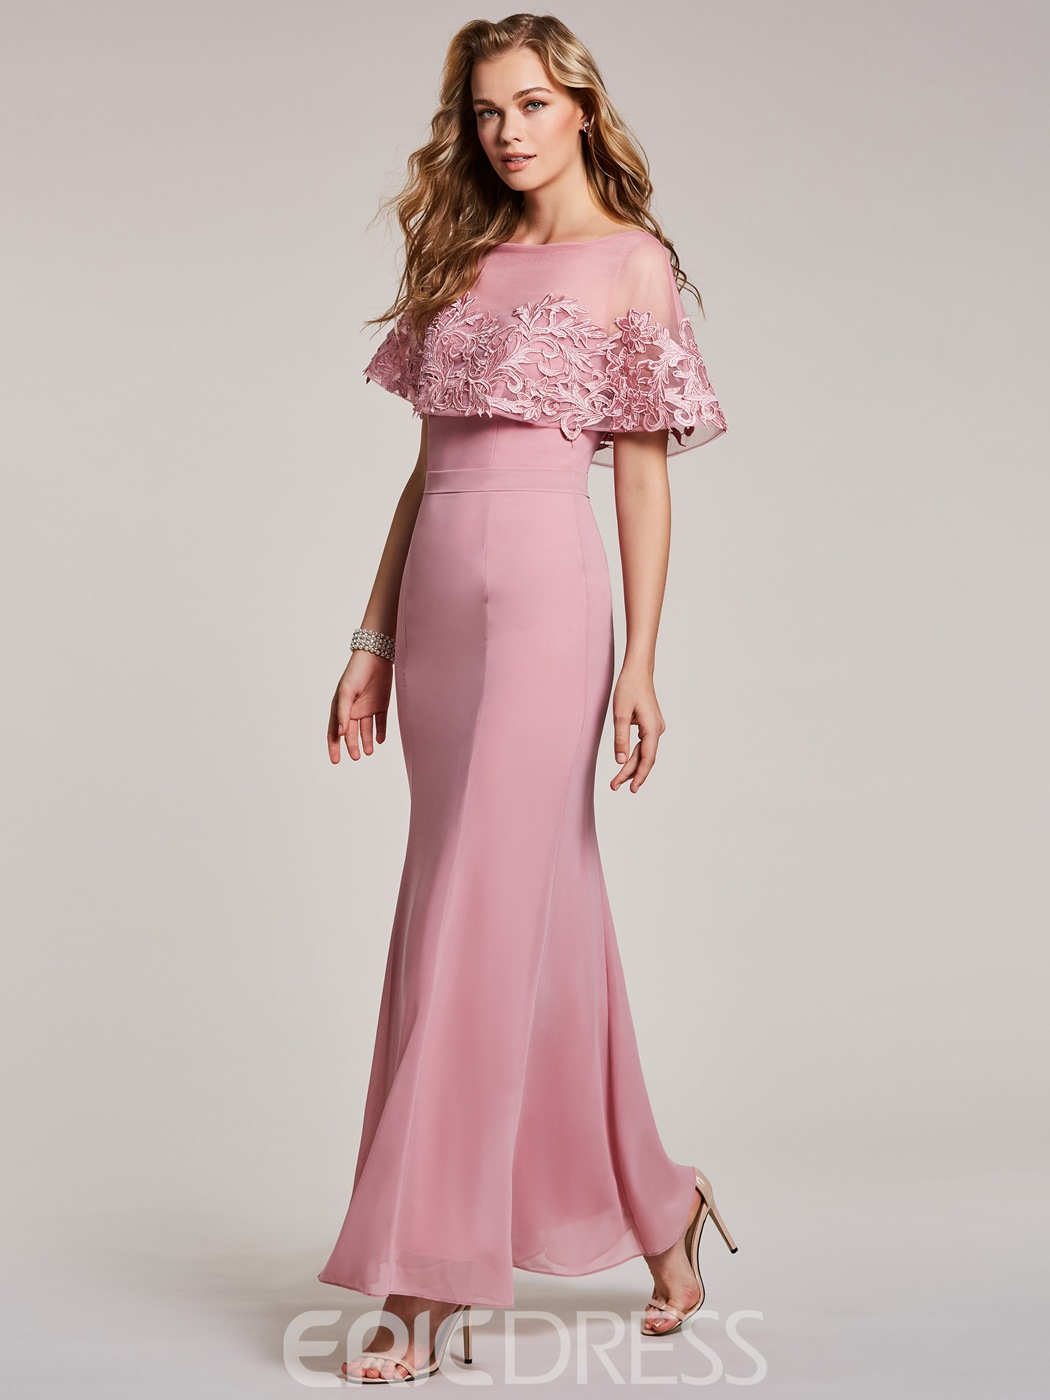 western dresses for wedding guests photo - 1